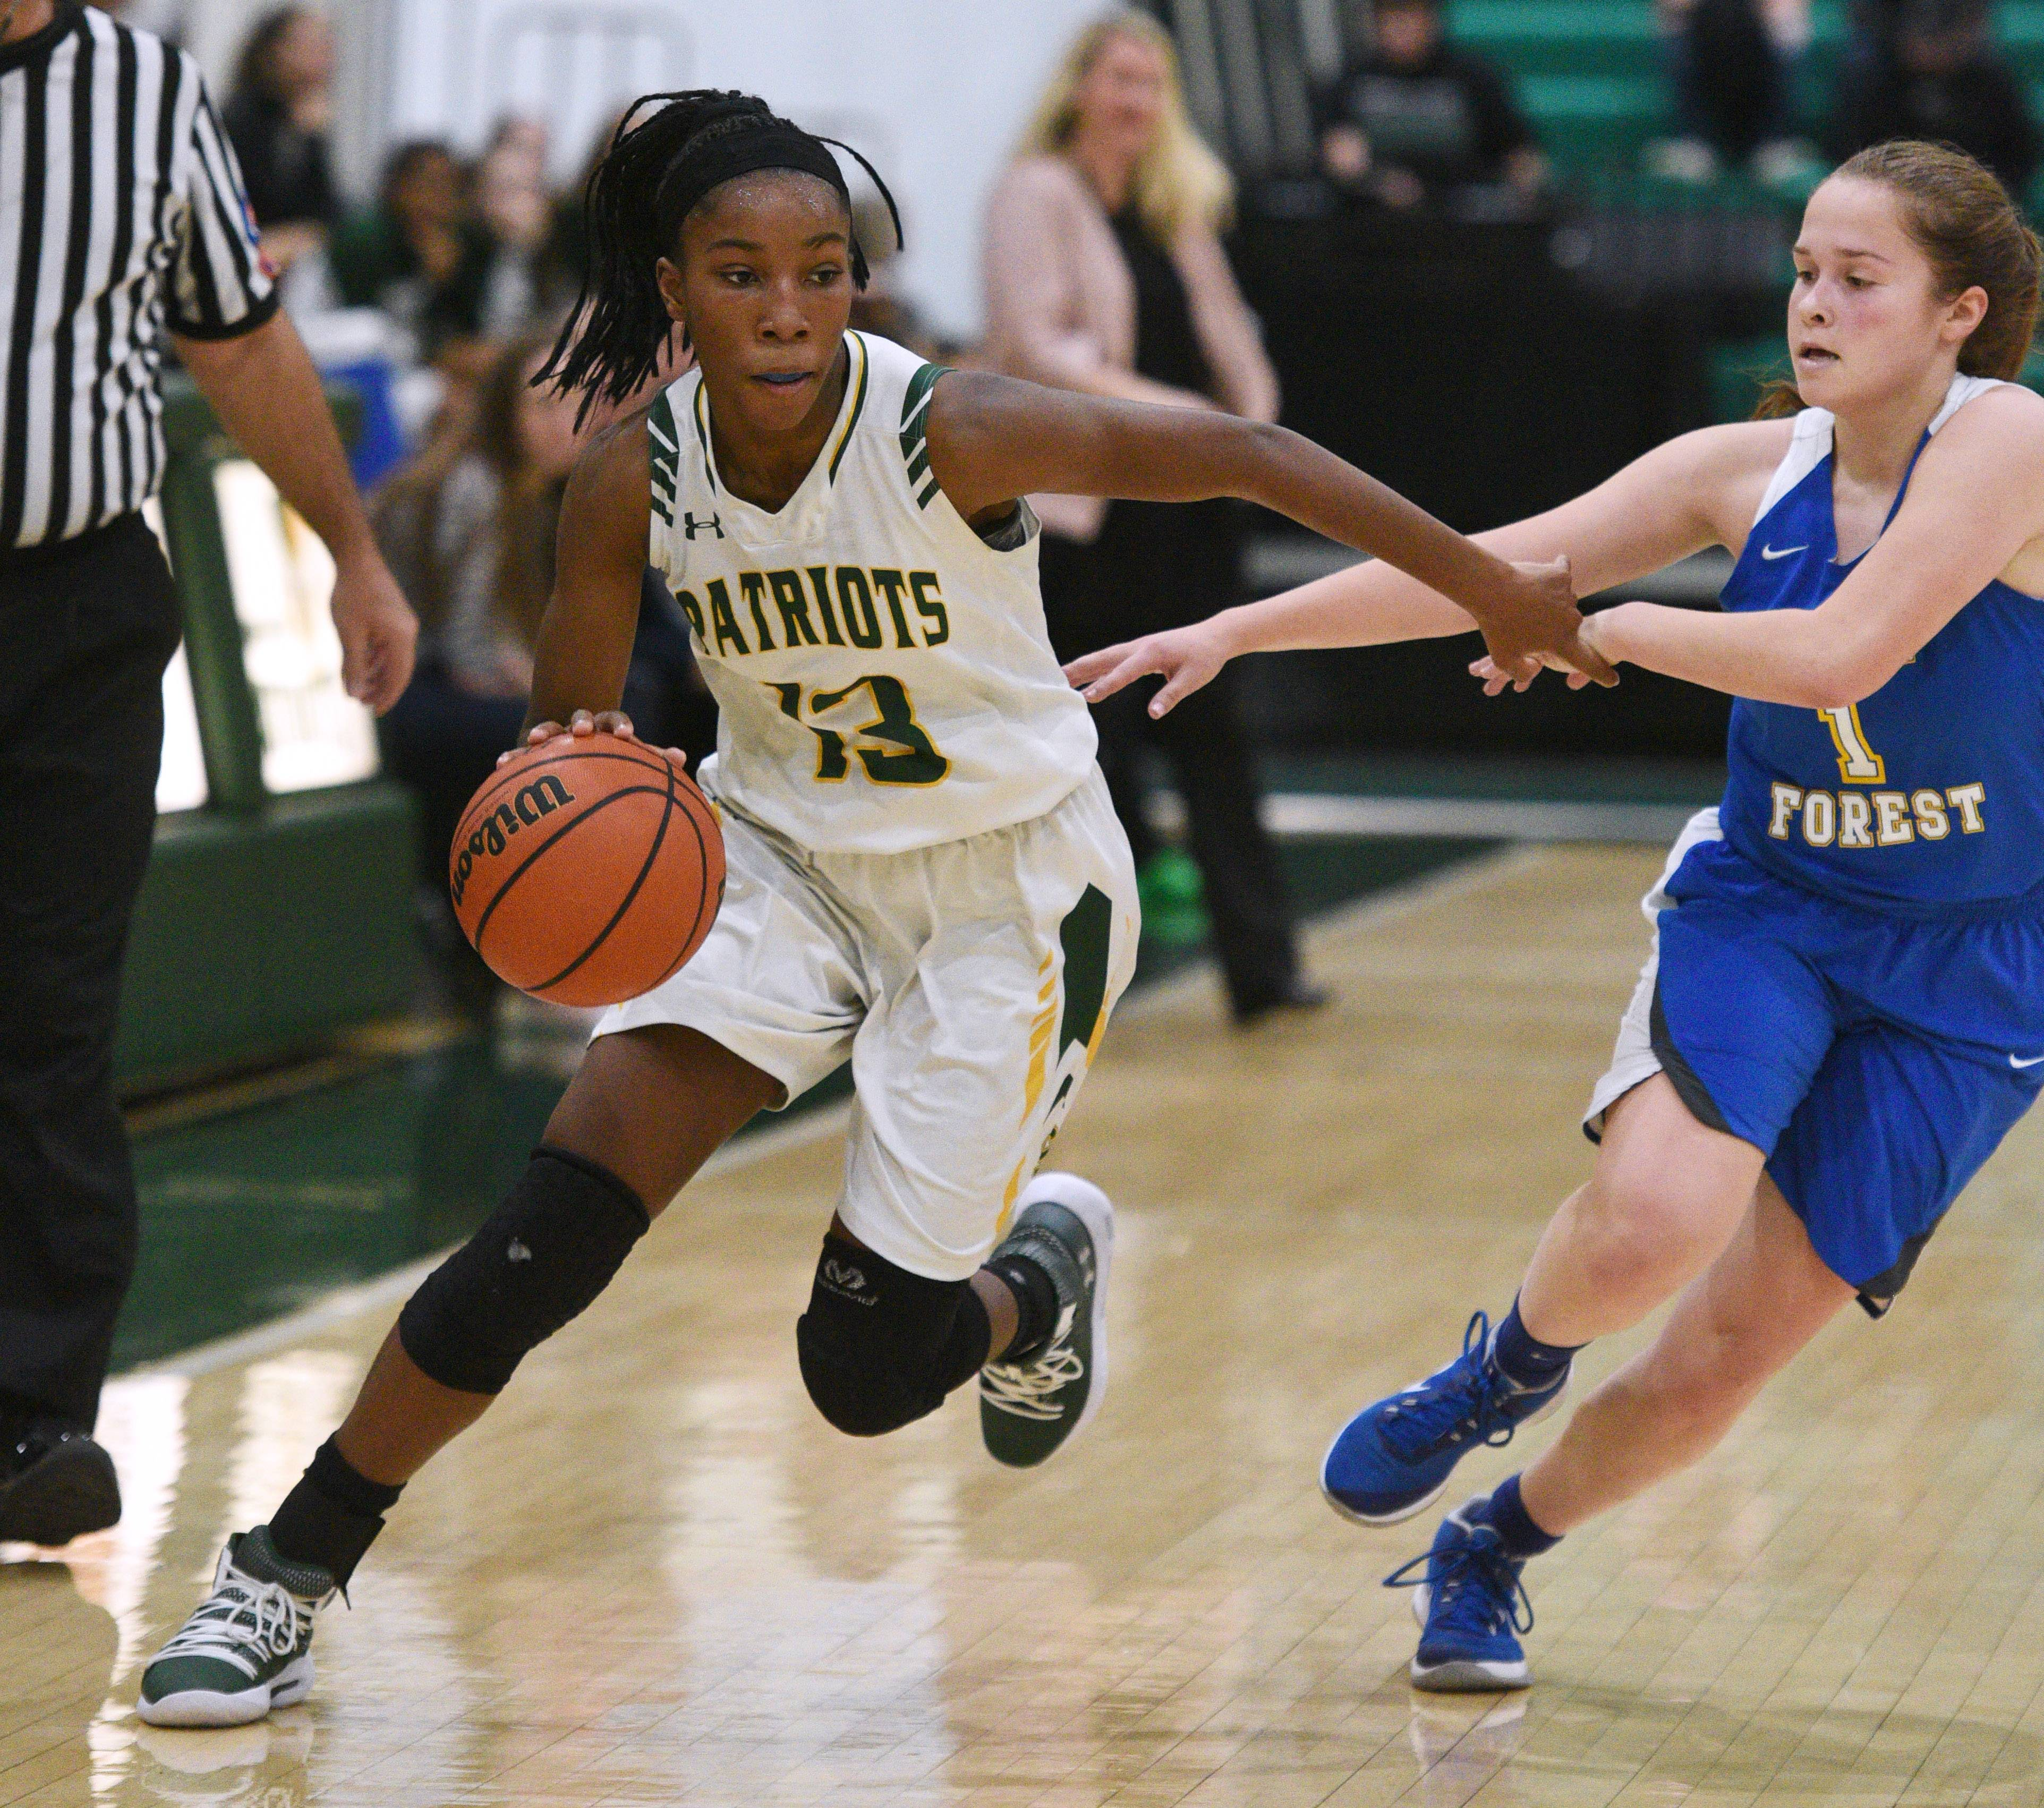 Stevenson's Simone Sawyer (13) drives past Lake Forest's Molly Fisher (1) during Friday's girls basketball game in Lincolnshire.